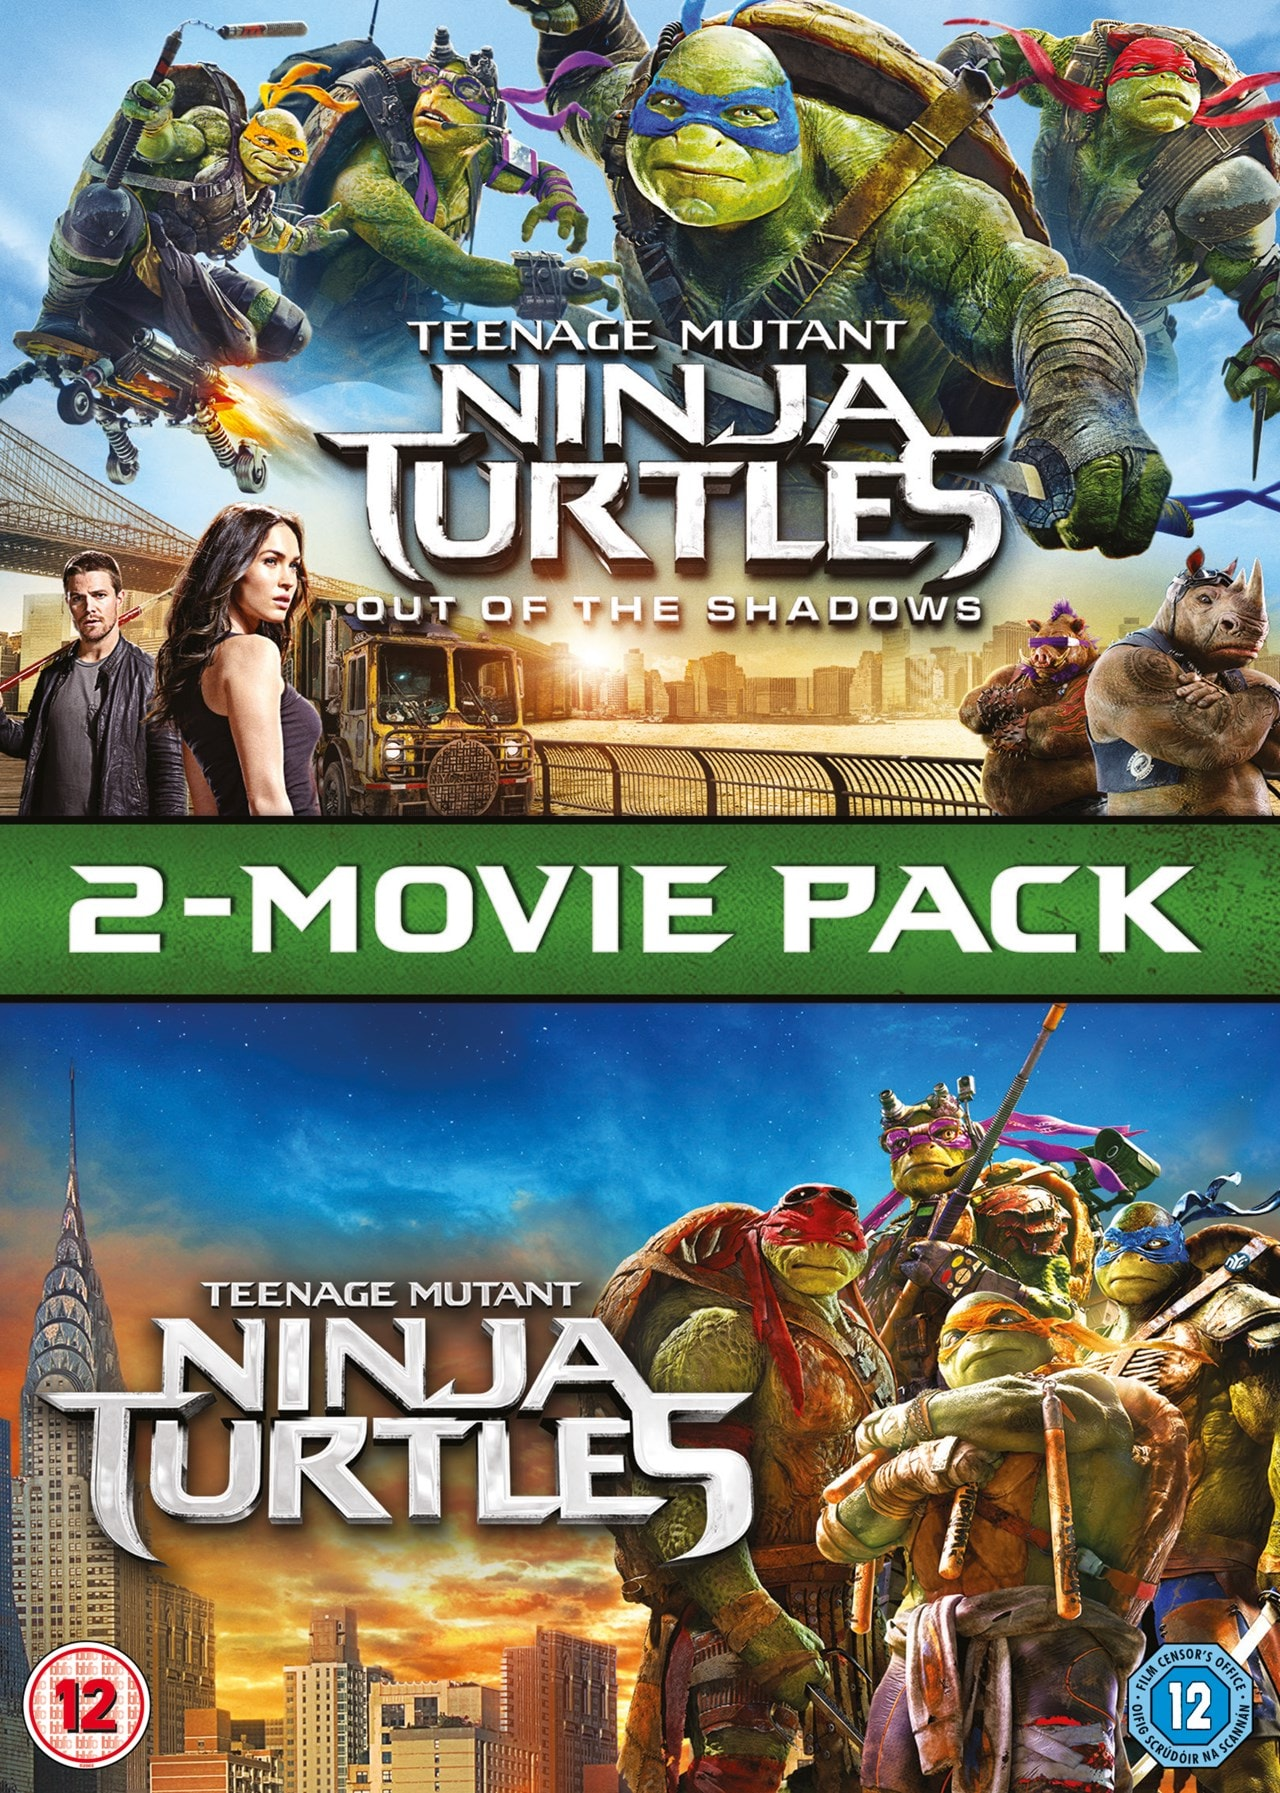 Teenage Mutant Ninja Turtles 2 Movie Pack Dvd Box Set Free Shipping Over 20 Hmv Store